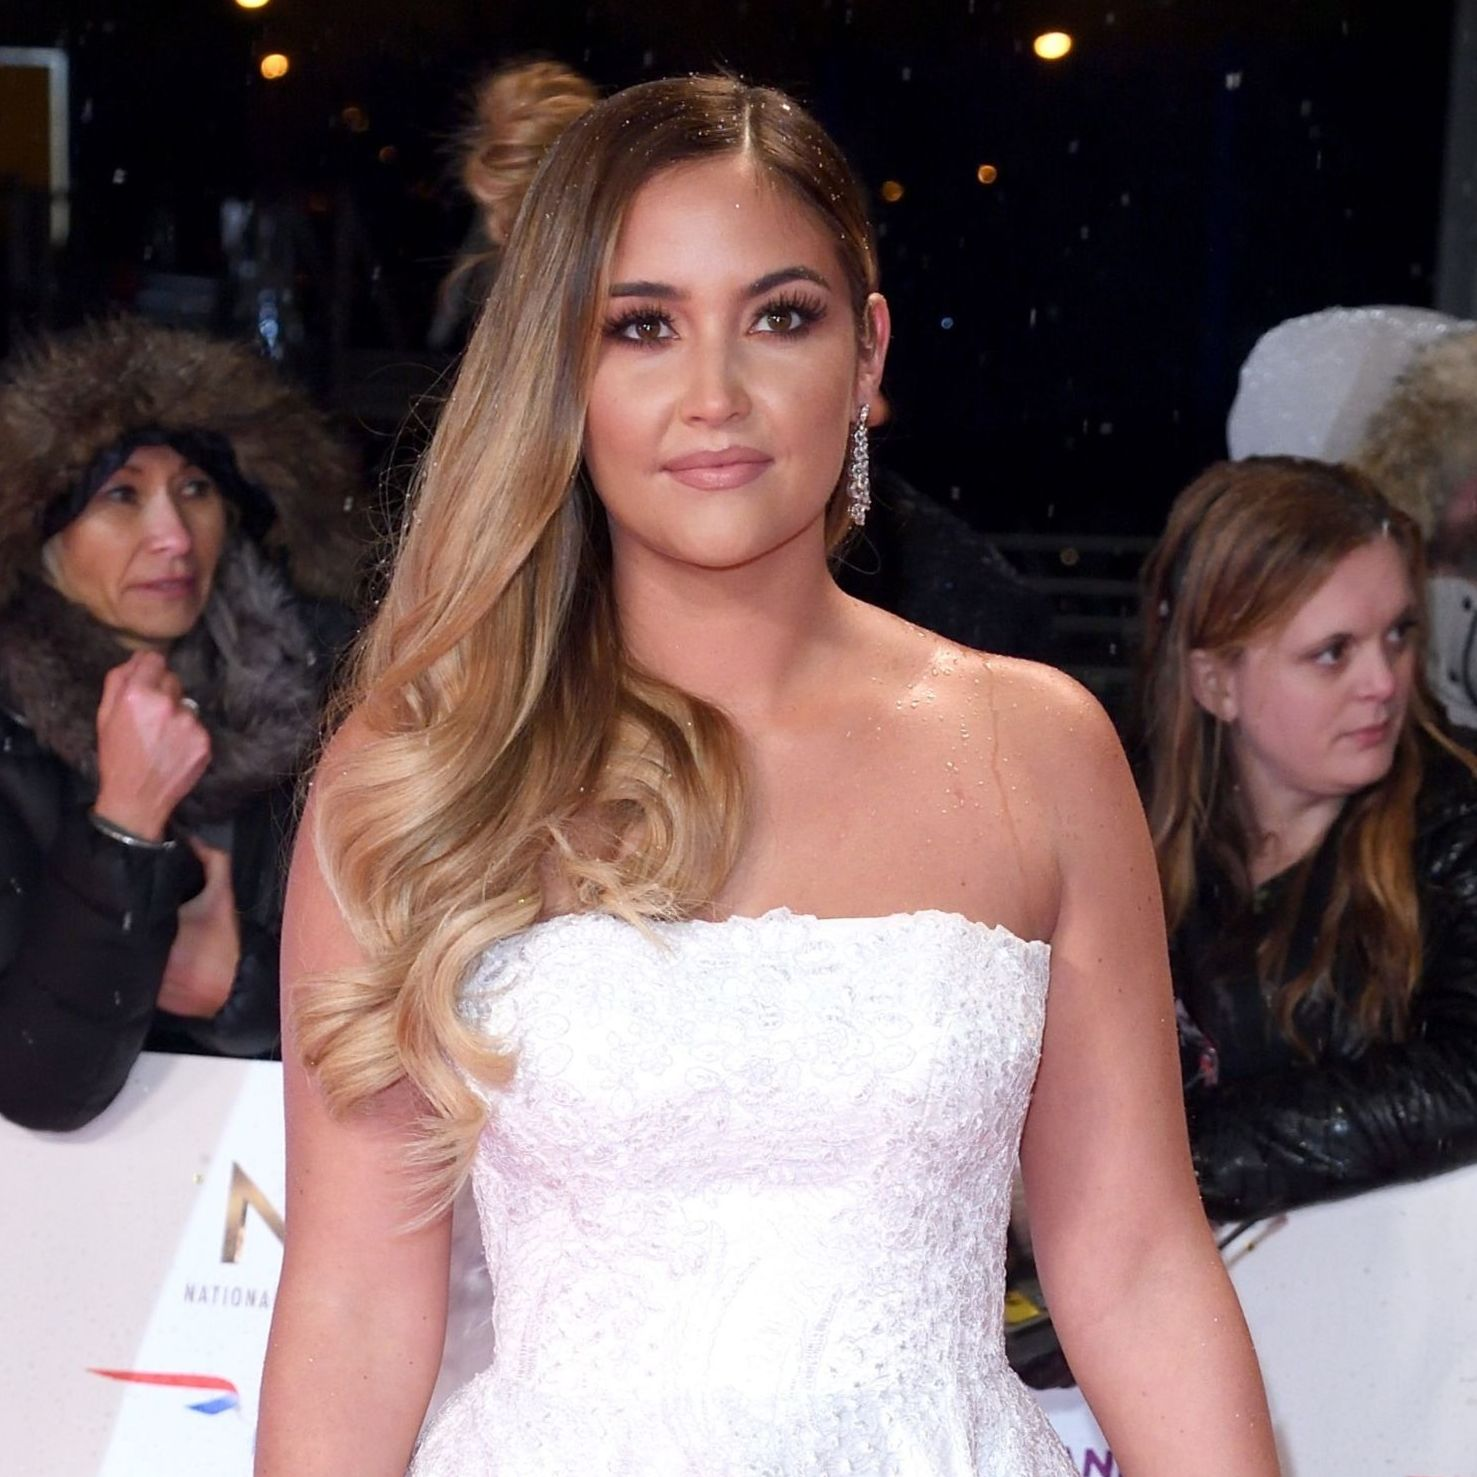 Former EastEnders star Jacqueline Jossa hits back after being asked if she's pregnant